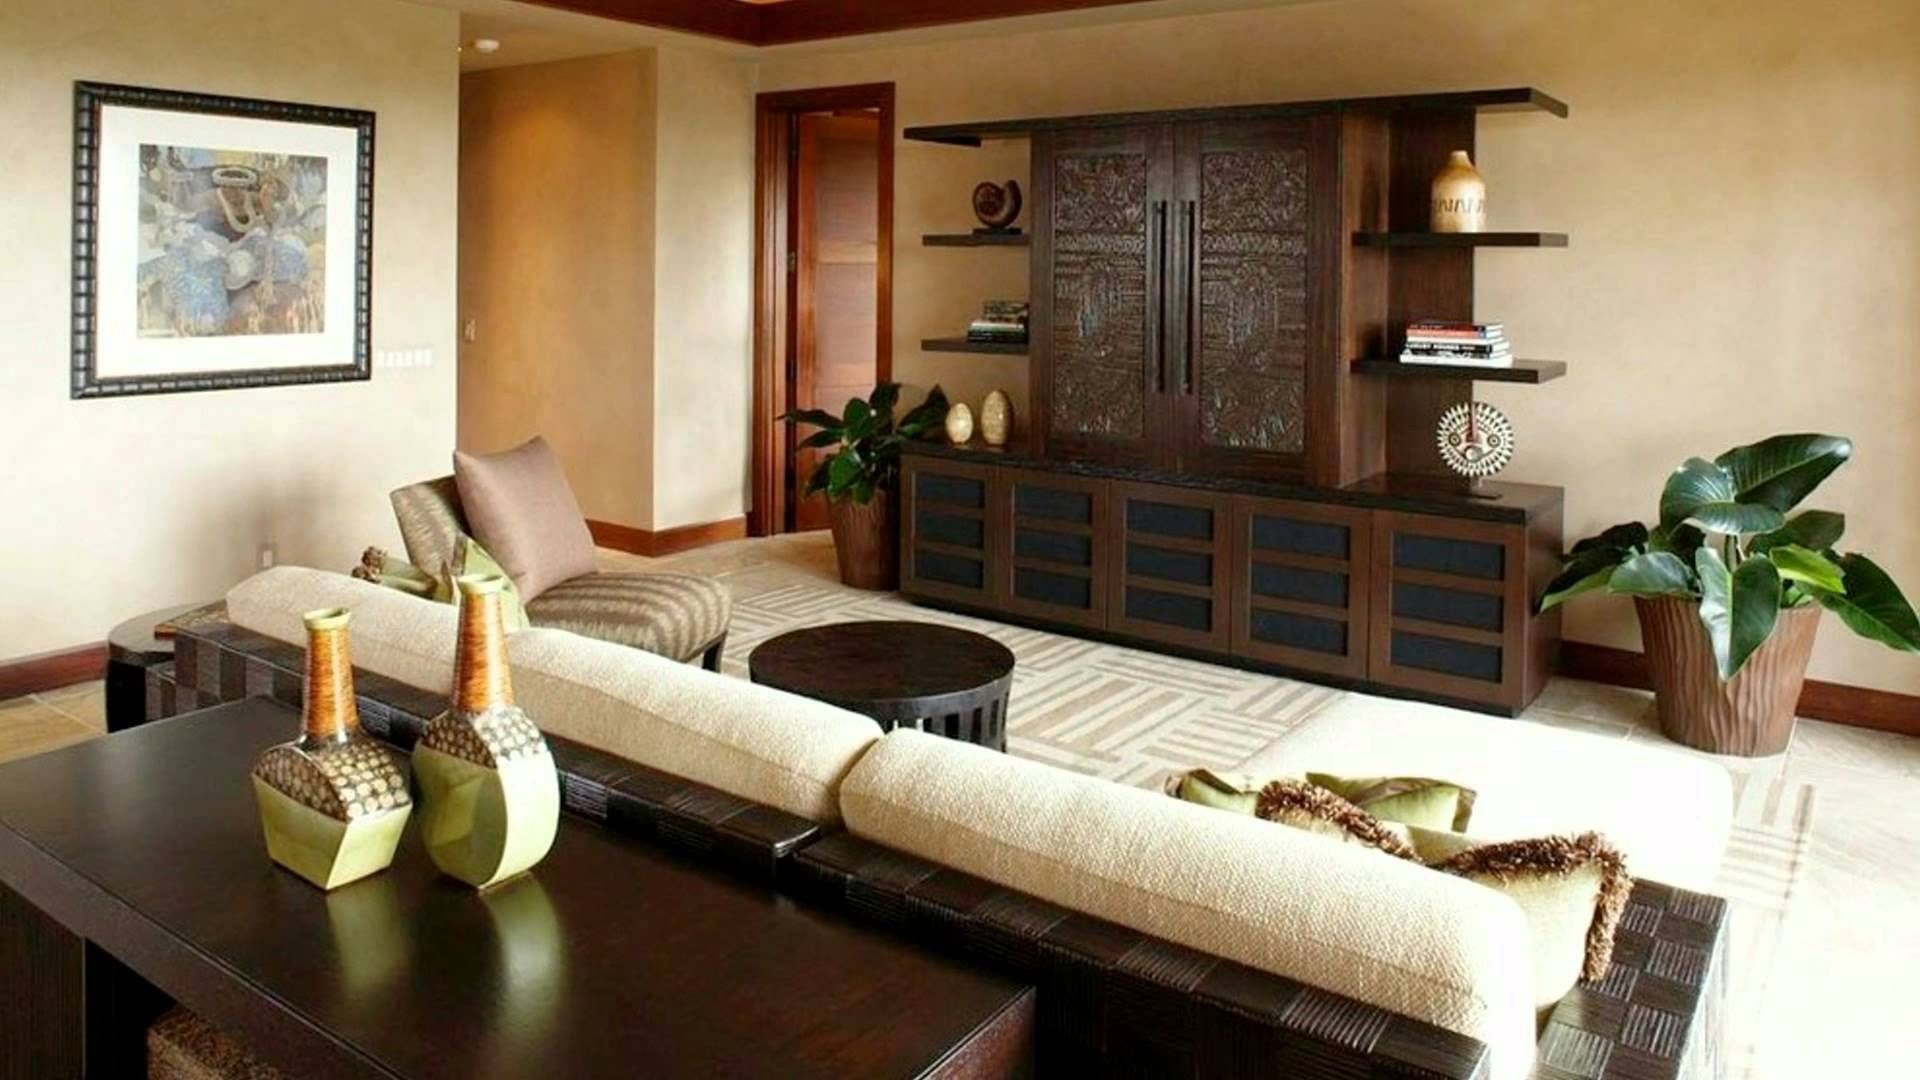 asian style interior design ideas creative showroom ideas asian rh pinterest com asian style decorating ideas home asian style decorating ideas